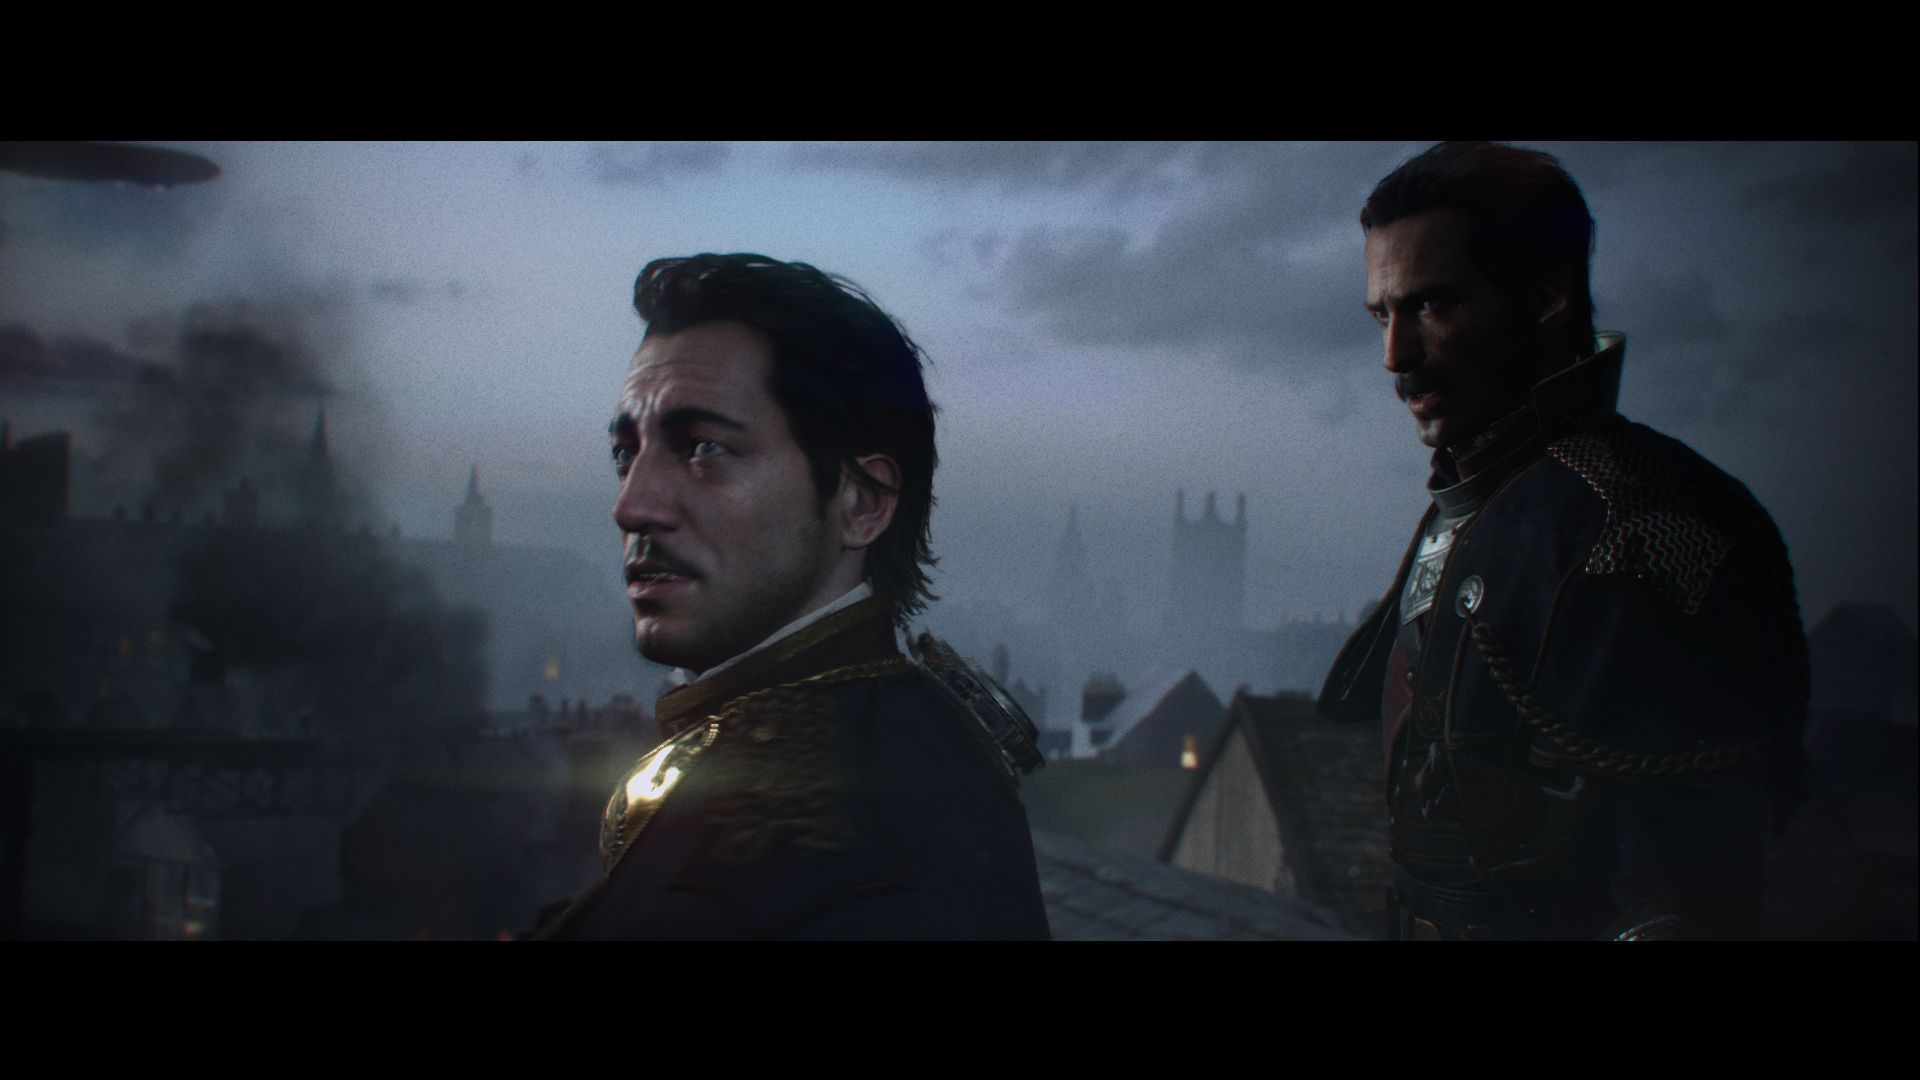 The Order: 1886 - number one despite the reviews